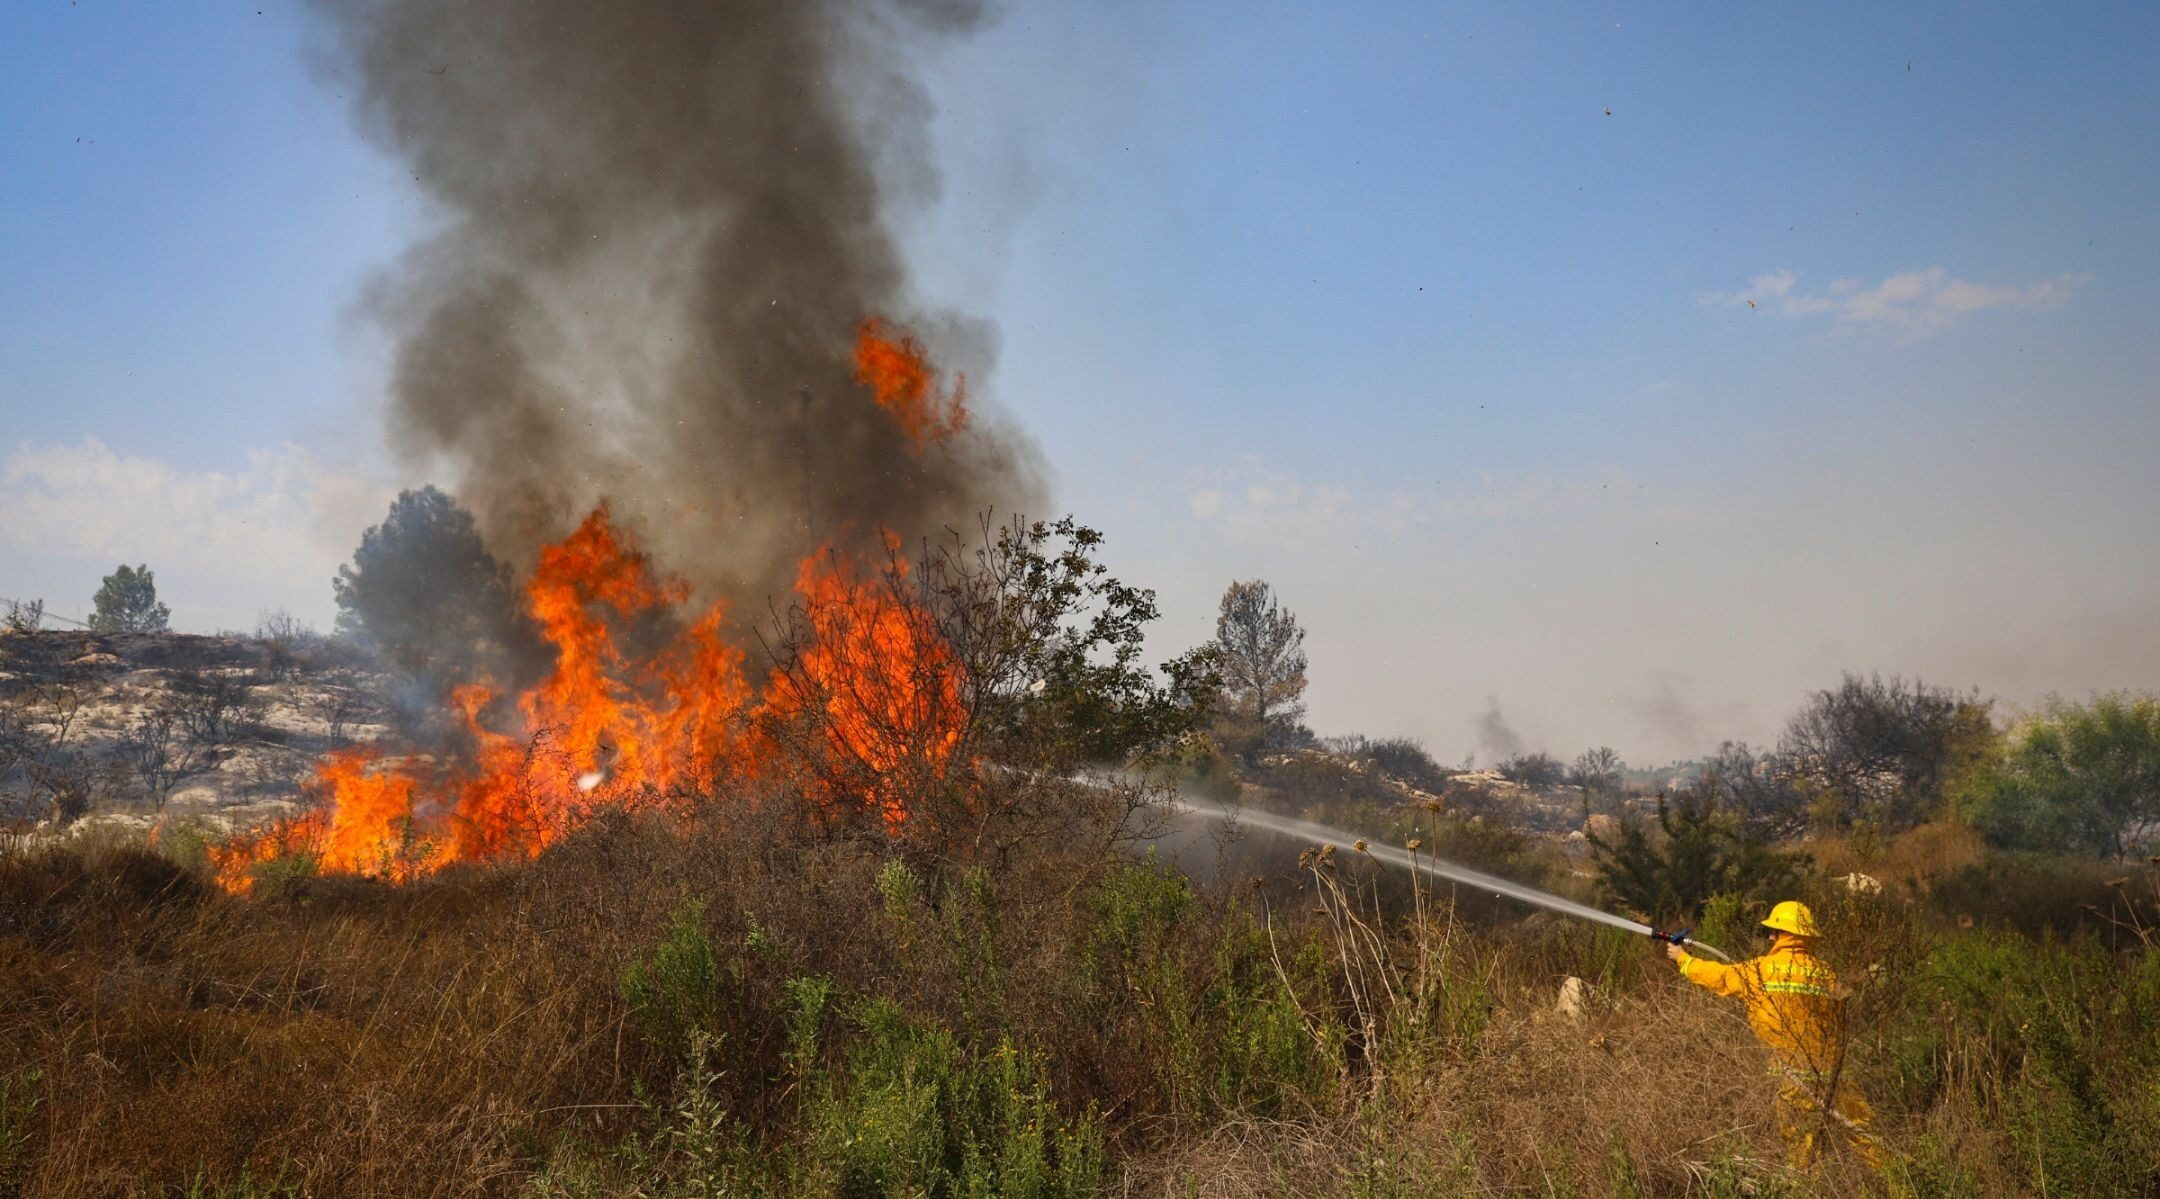 A firefighter works to extinguish a fire near the Kfar HaOranim settlement in the West Bank on Oct. 9, 2020. (Photo/JTA-Yossi Aloni-Flash90)